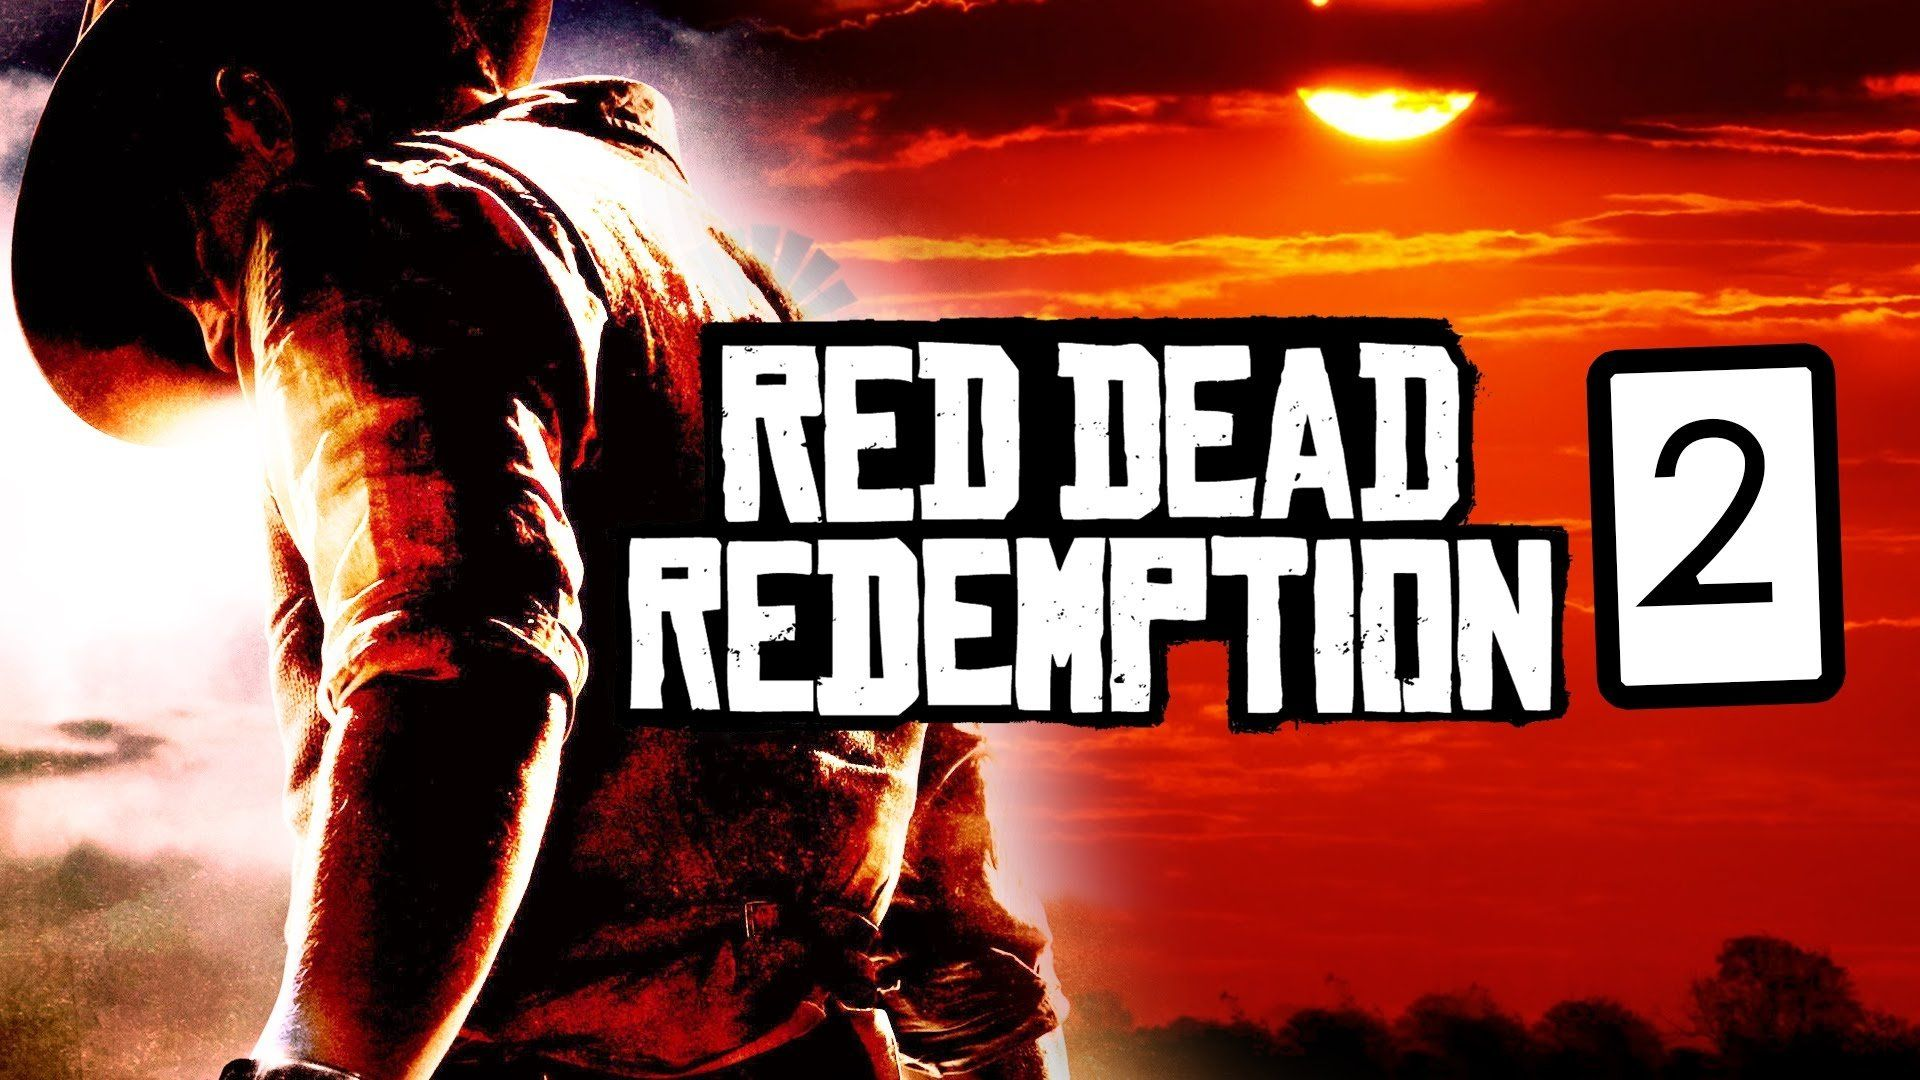 Red Dead Redemption 2 Wallpaper Hd With Images Red Dead